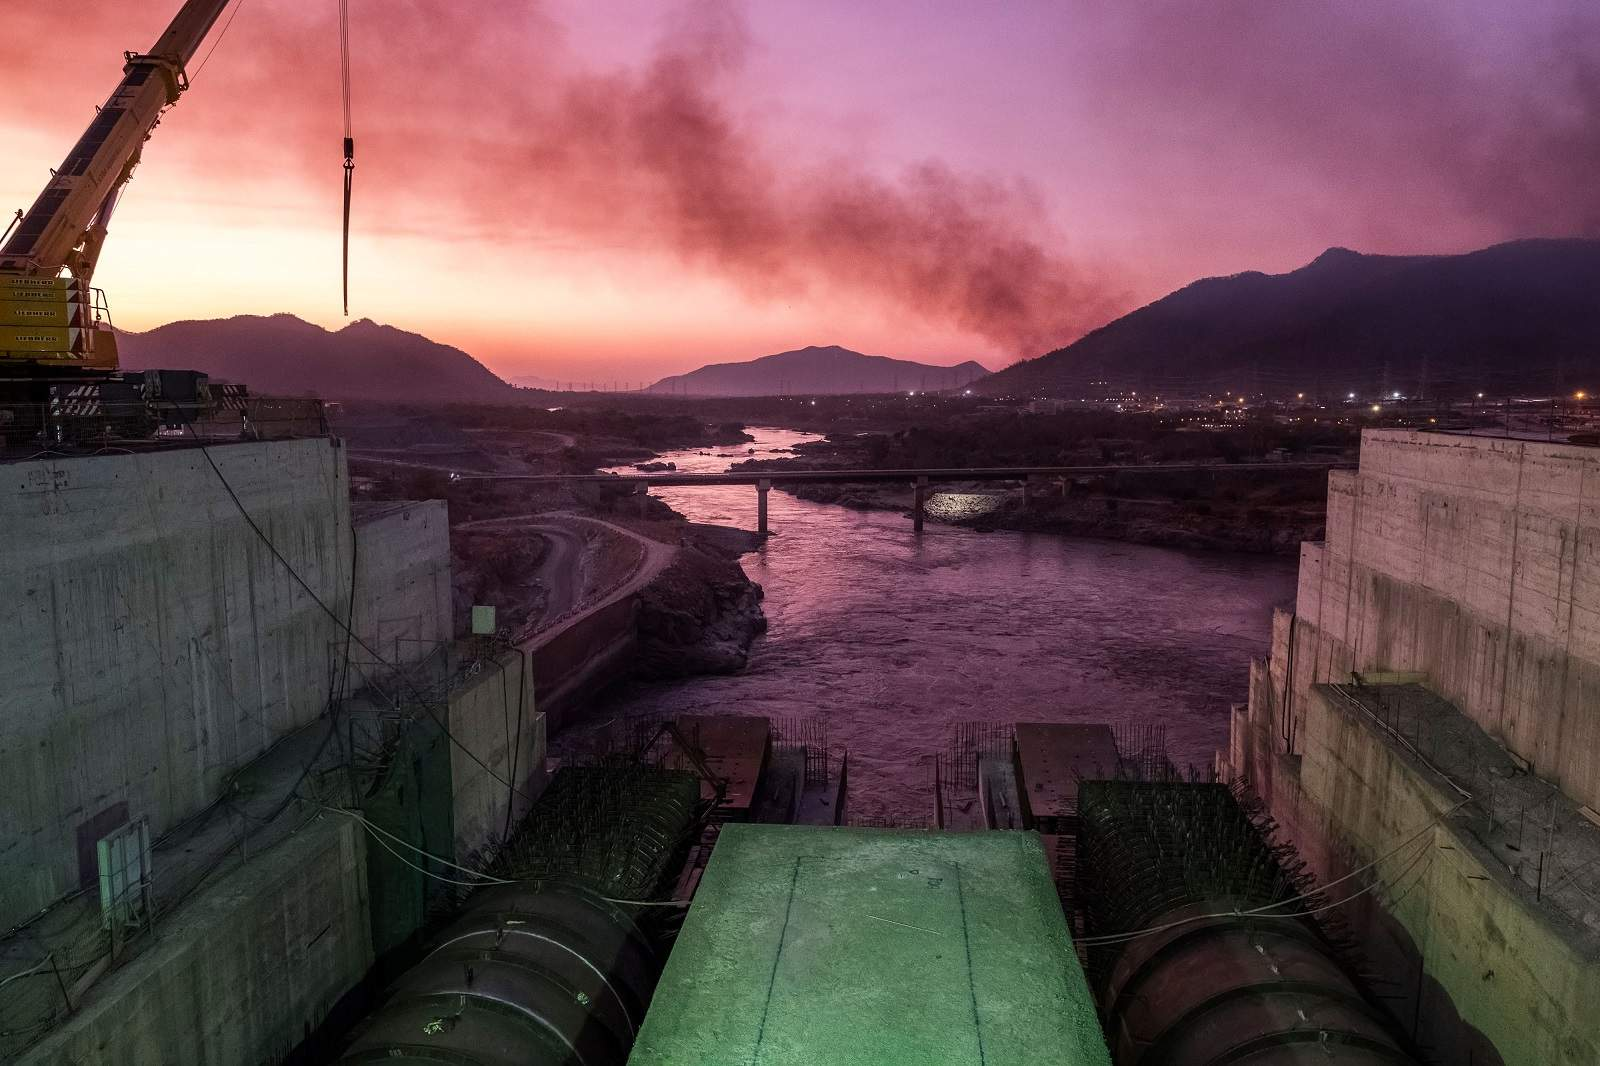 The Grand Ethiopian Renaissance Dam is set to become the largest hydropower plant in Africa (Eduardo Soteras/AFP via Getty Images)